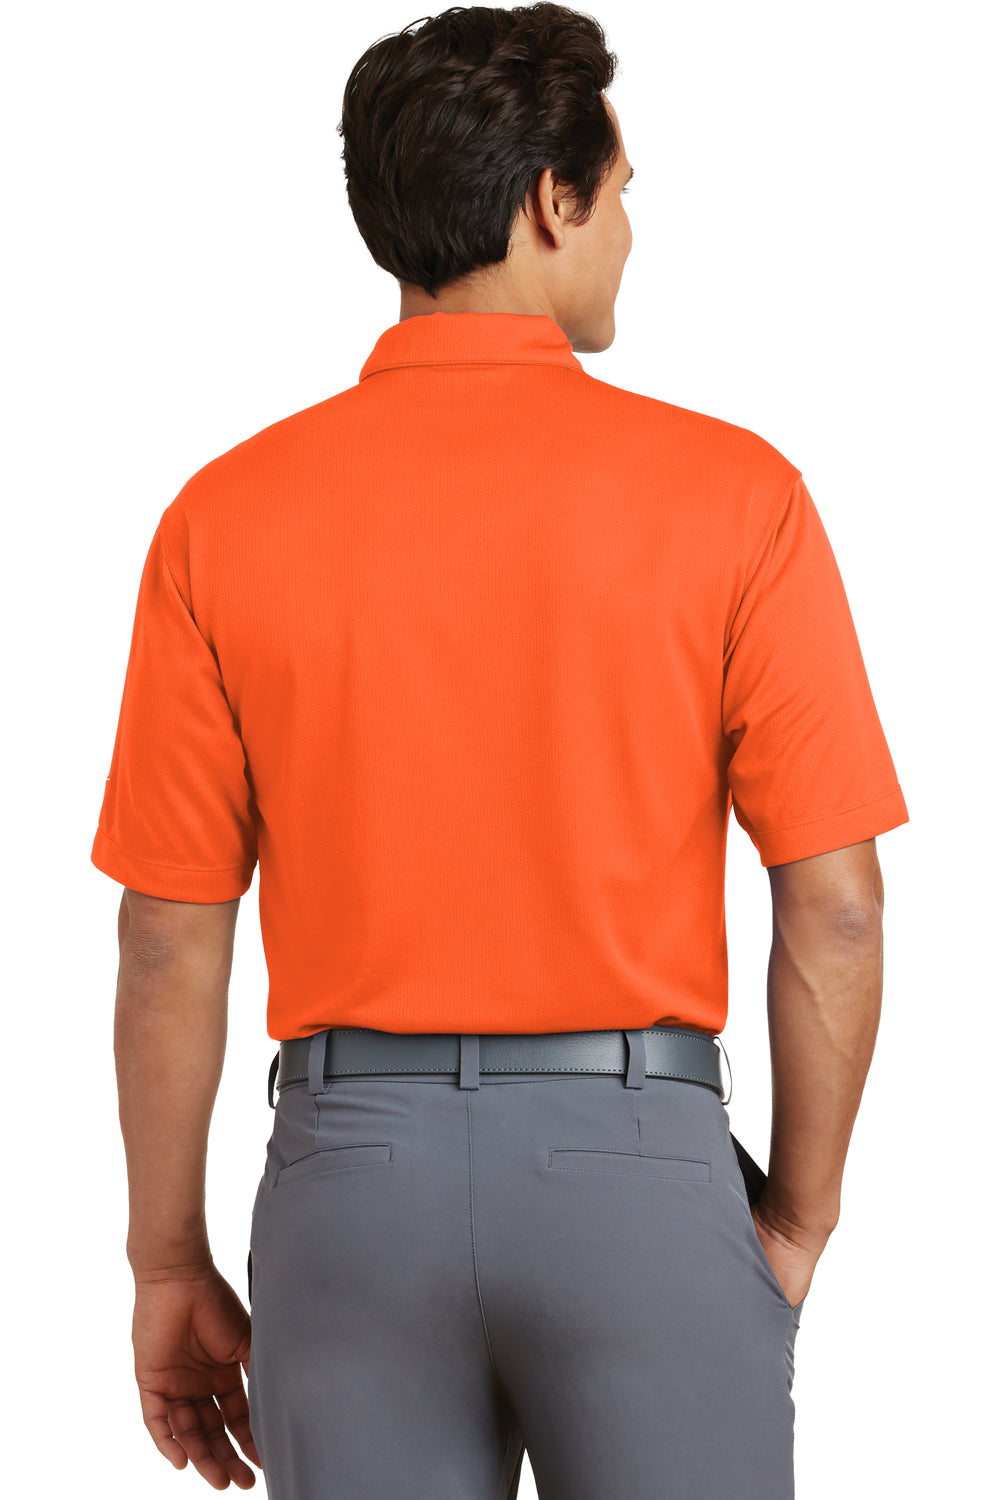 Nike 373749 Mens Dri-Fit Moisture Wicking Short Sleeve Polo Shirt Orange Back